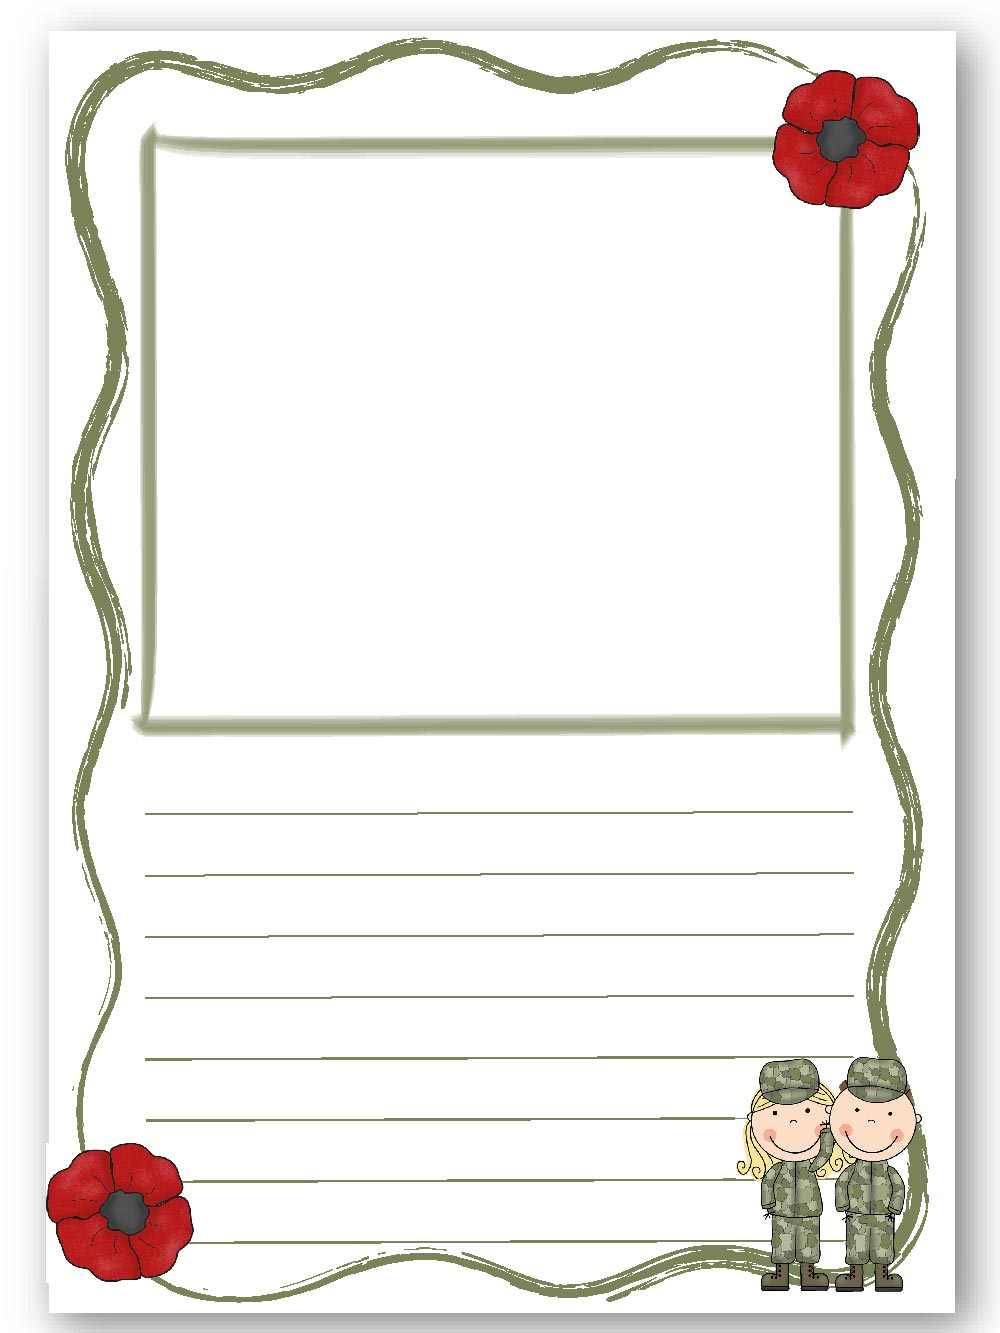 veterans day writing paper Remembrance day or veteran's day printables for preschool, kindergarten and gradeschool kids  remembrance day or veteran's day printables writing paper.